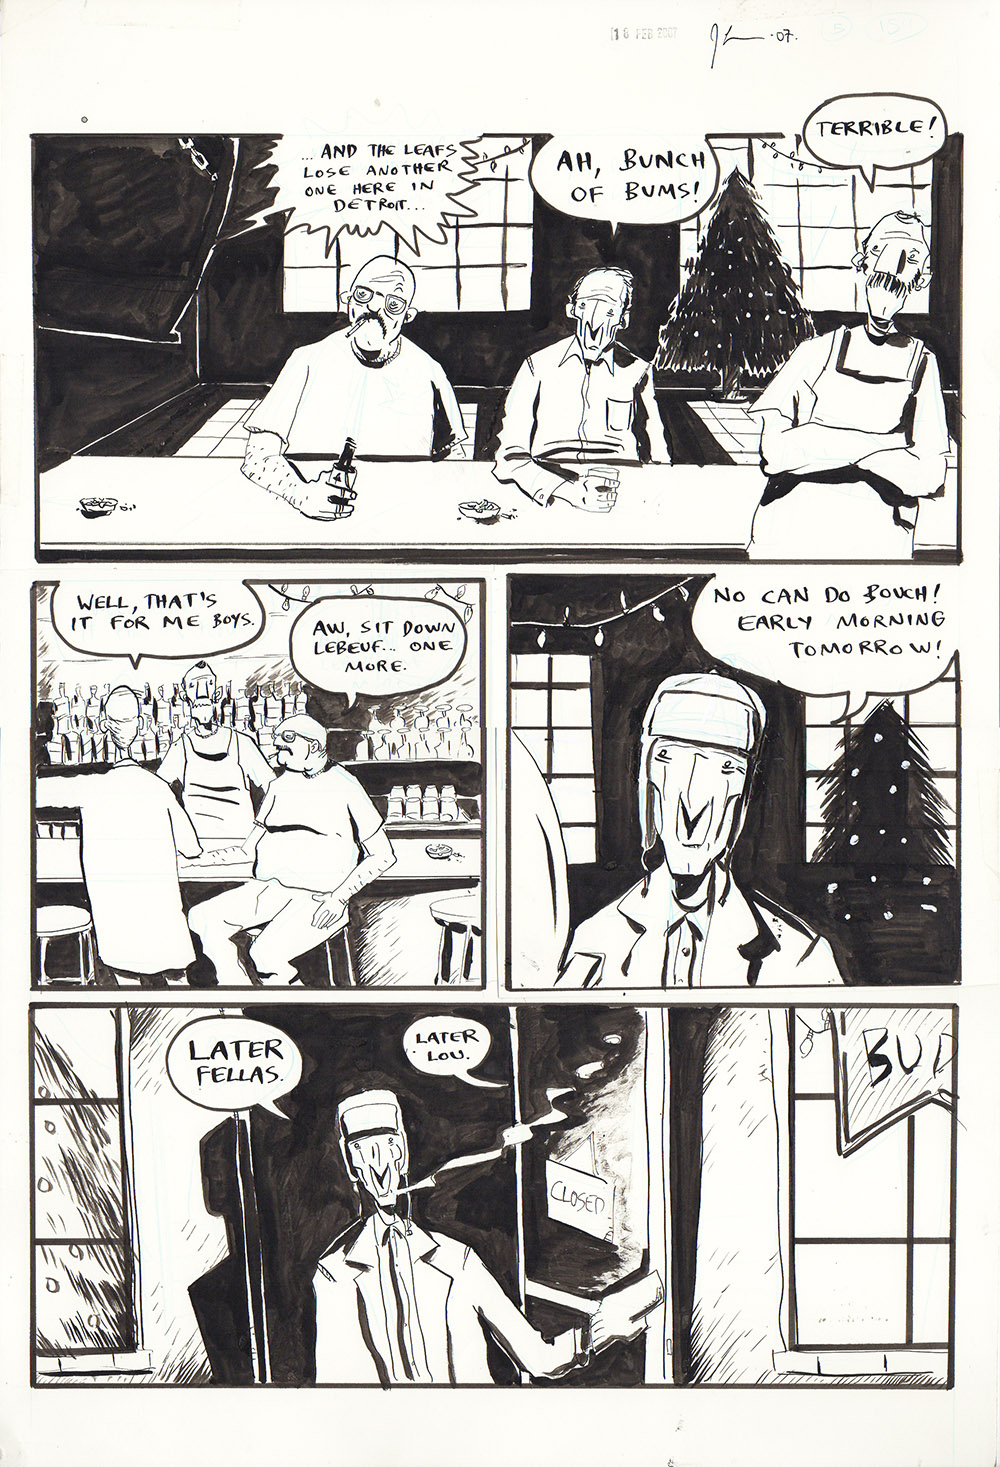 Essex County Book 2: Ghost Stories - page 275